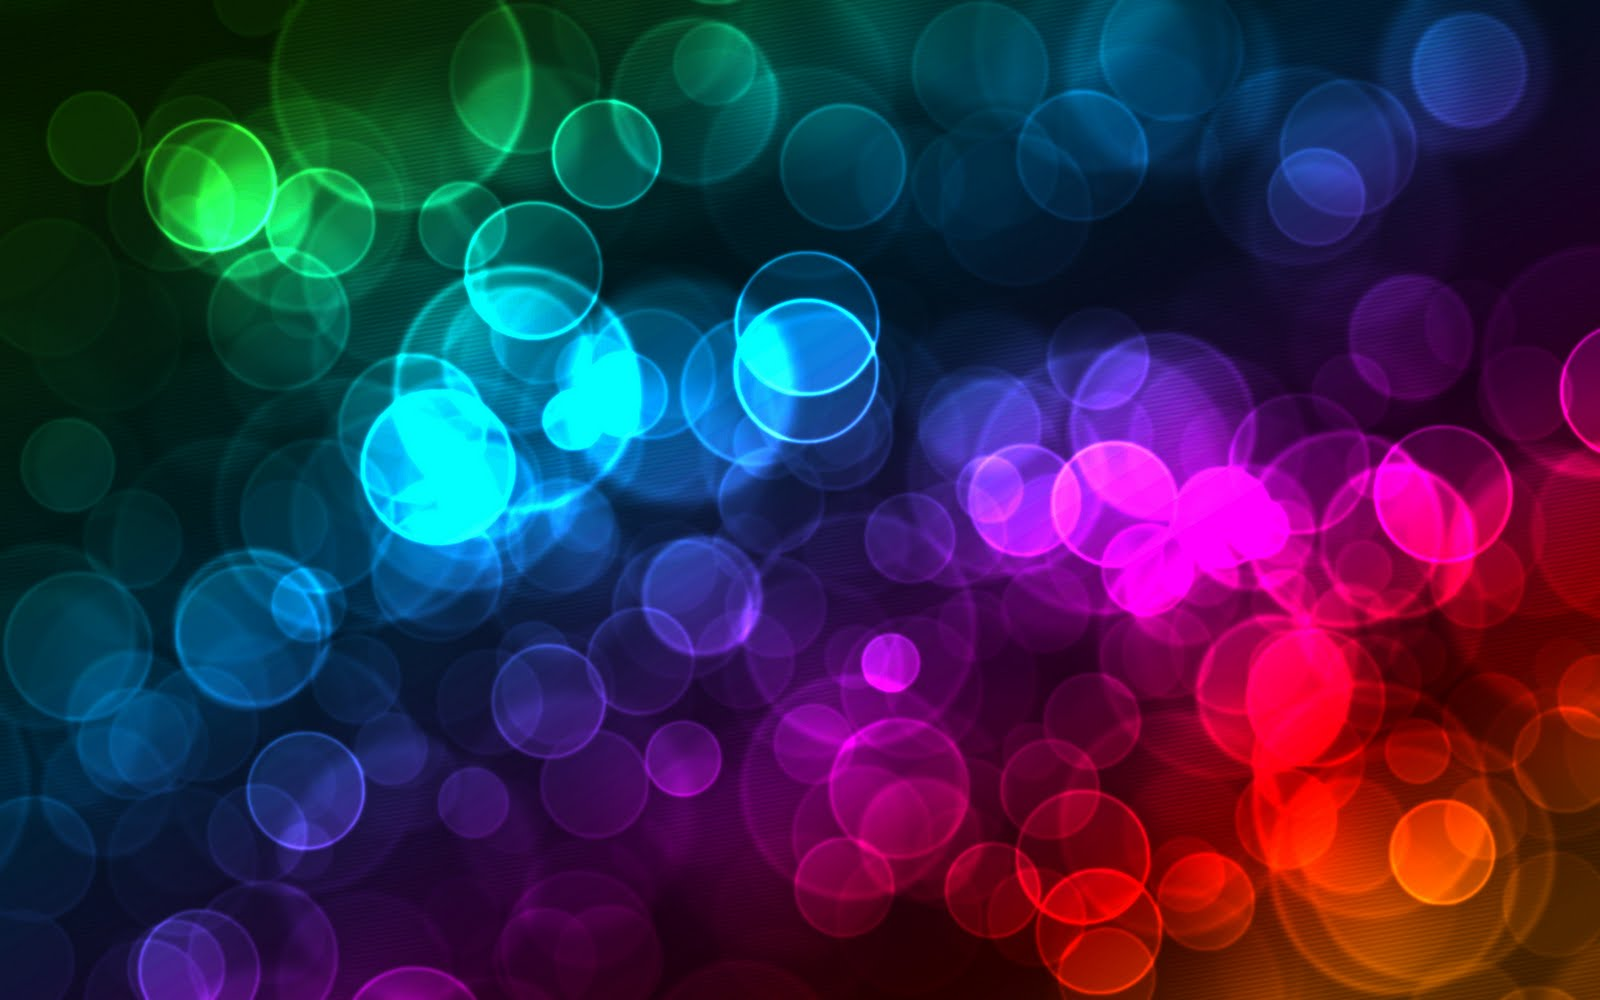 3d Bubbles Wallpaper: Bubble Wallpaper